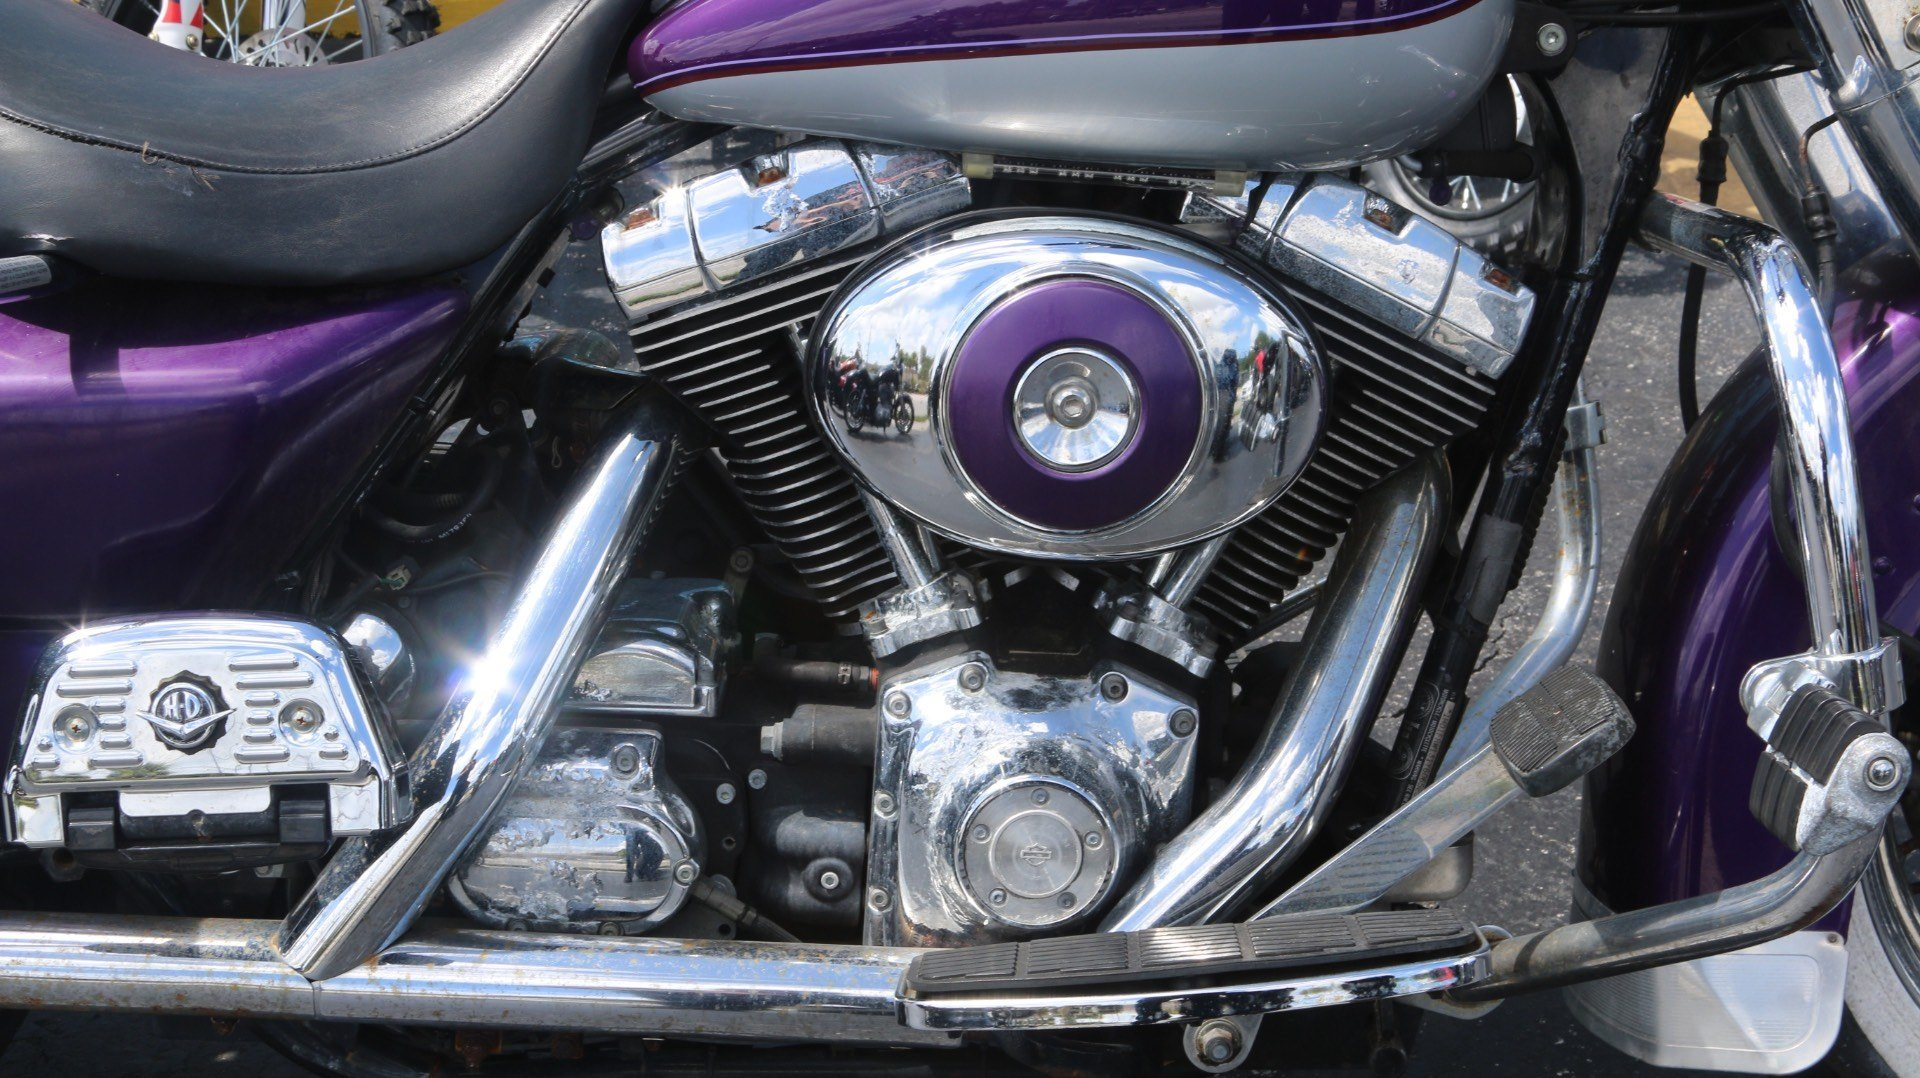 2001 Harley-Davidson Road King in Pinellas Park, Florida - Photo 5